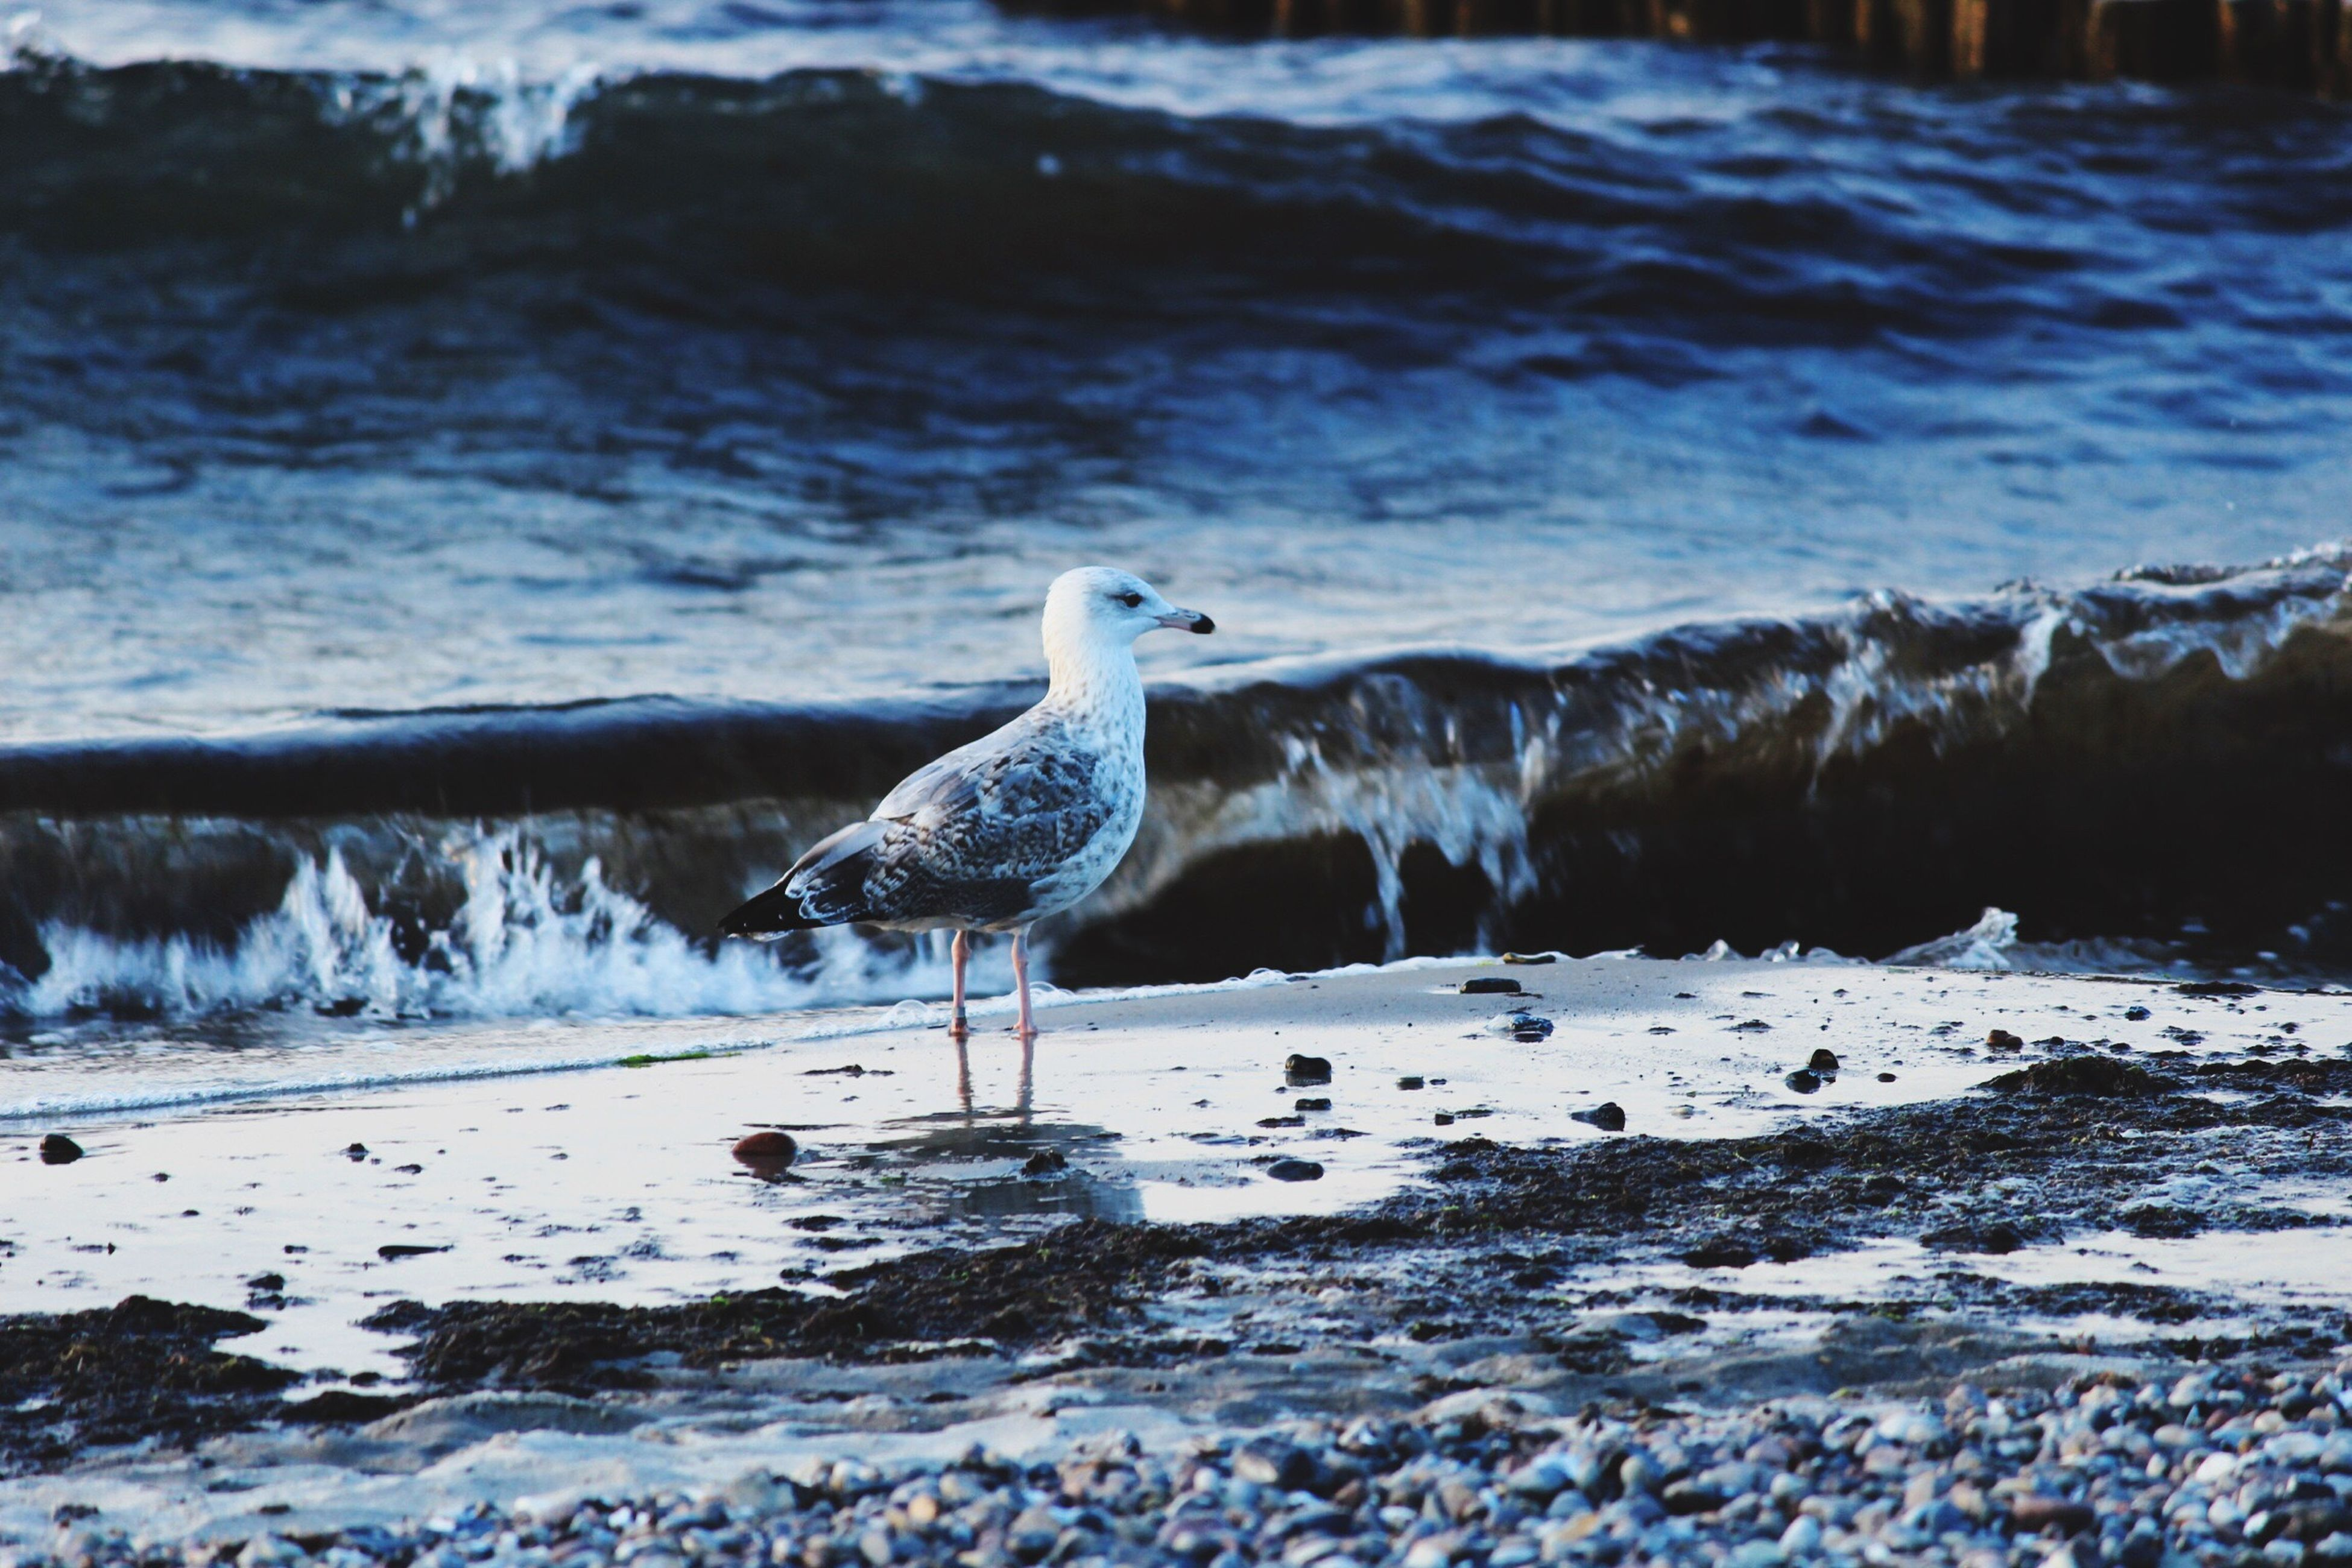 bird, animal themes, animals in the wild, water, wildlife, seagull, one animal, sea, nature, perching, side view, beauty in nature, outdoors, day, focus on foreground, tranquility, spread wings, rock - object, no people, beach